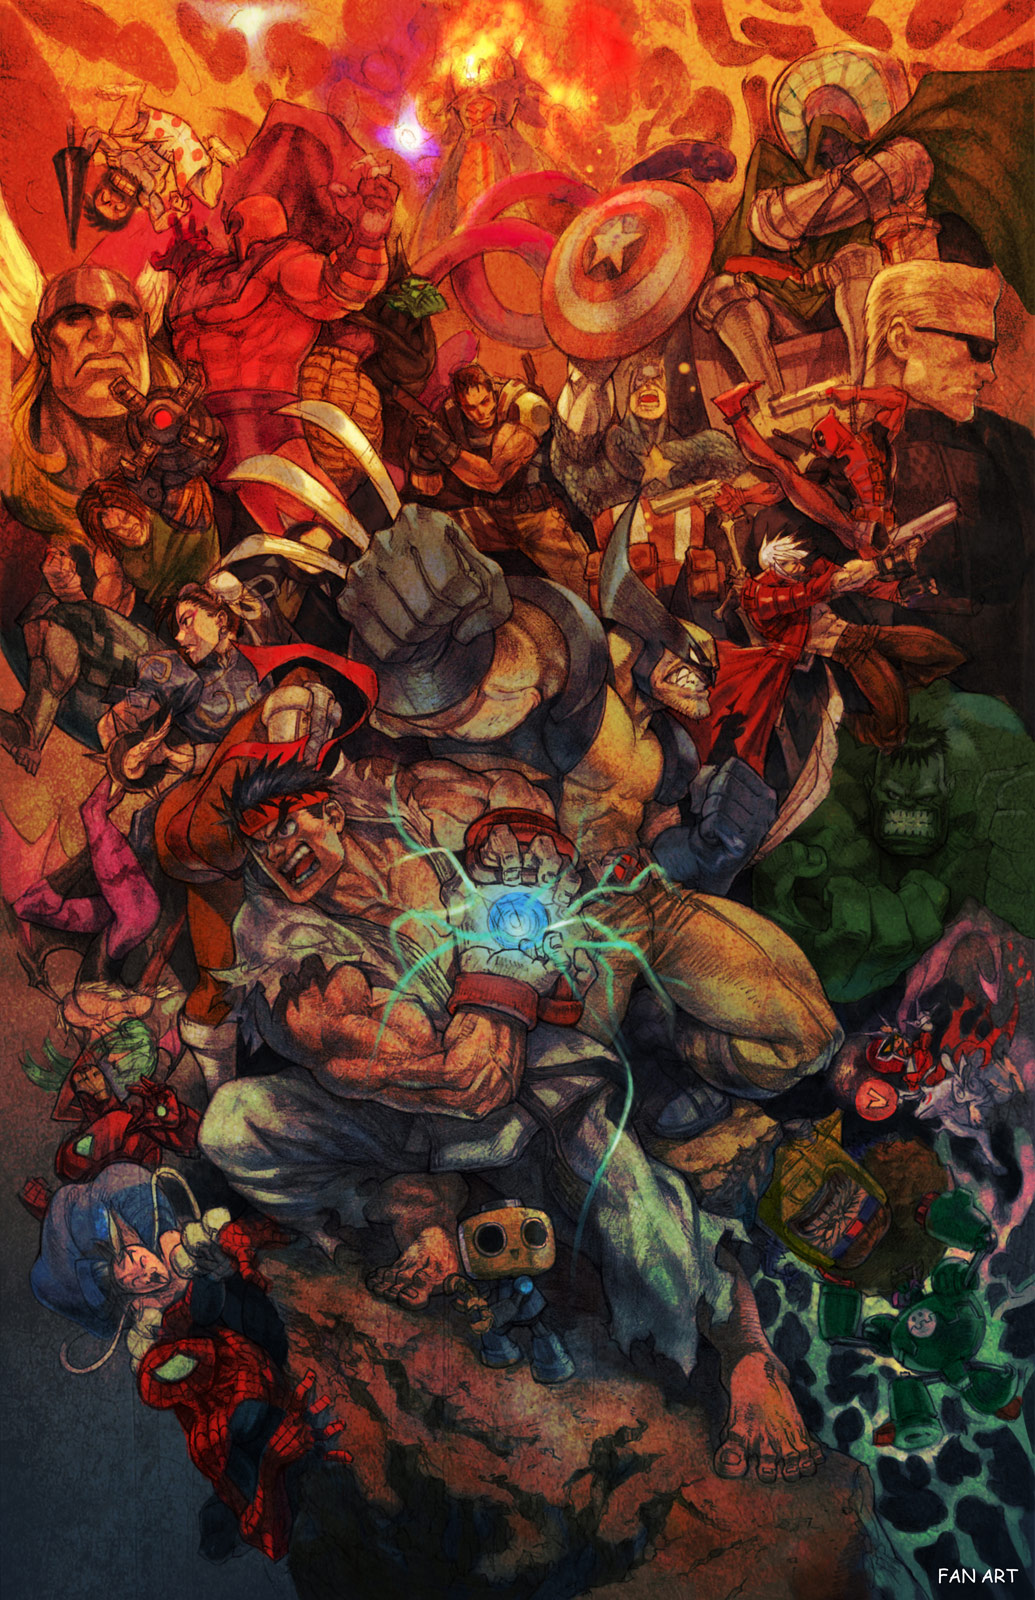 Marvel vs. Capcom 3 fan art contest winner #2